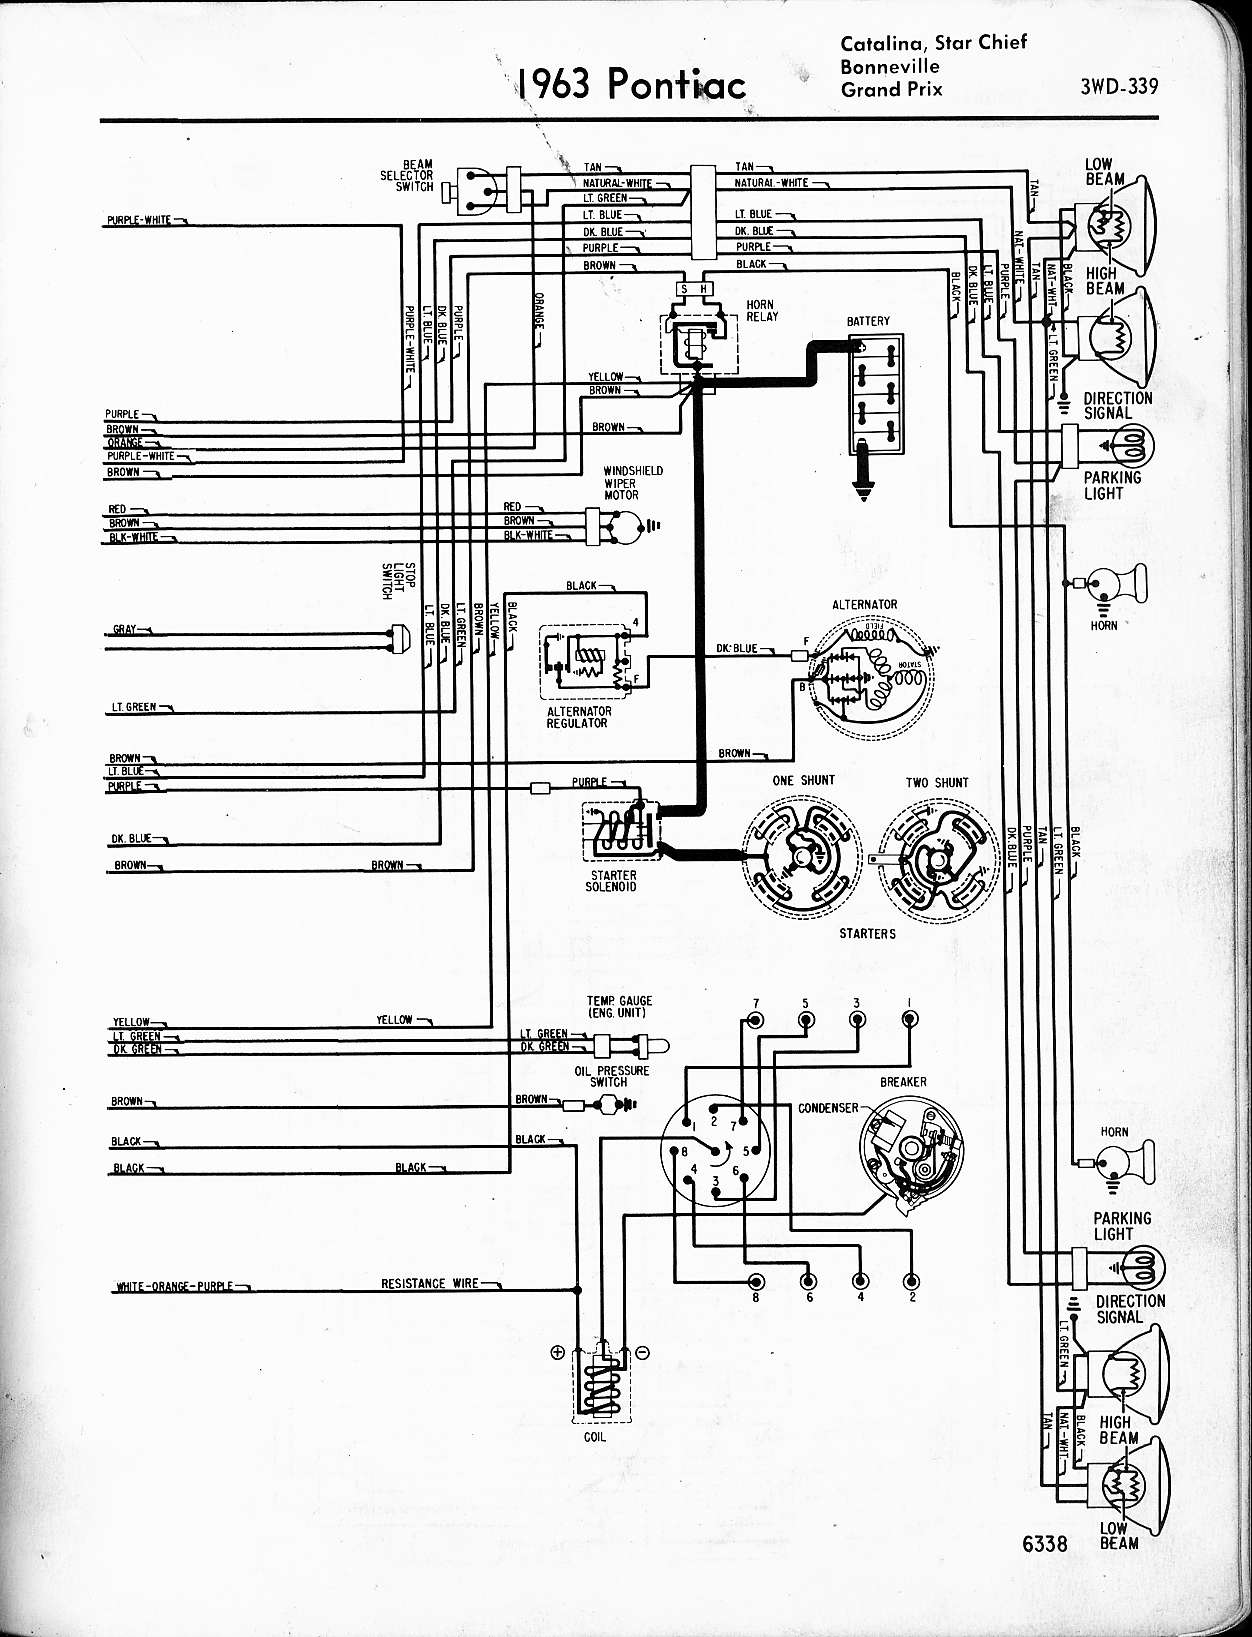 besides Chevrolet Drive Shaft Front also Chevrolet V Impala Electrical Wiring Diagram further Schema Electricite Vw Karmann Ghia besides Ford Horn Ring Contact Big. on 1959 chevy truck wiring diagram